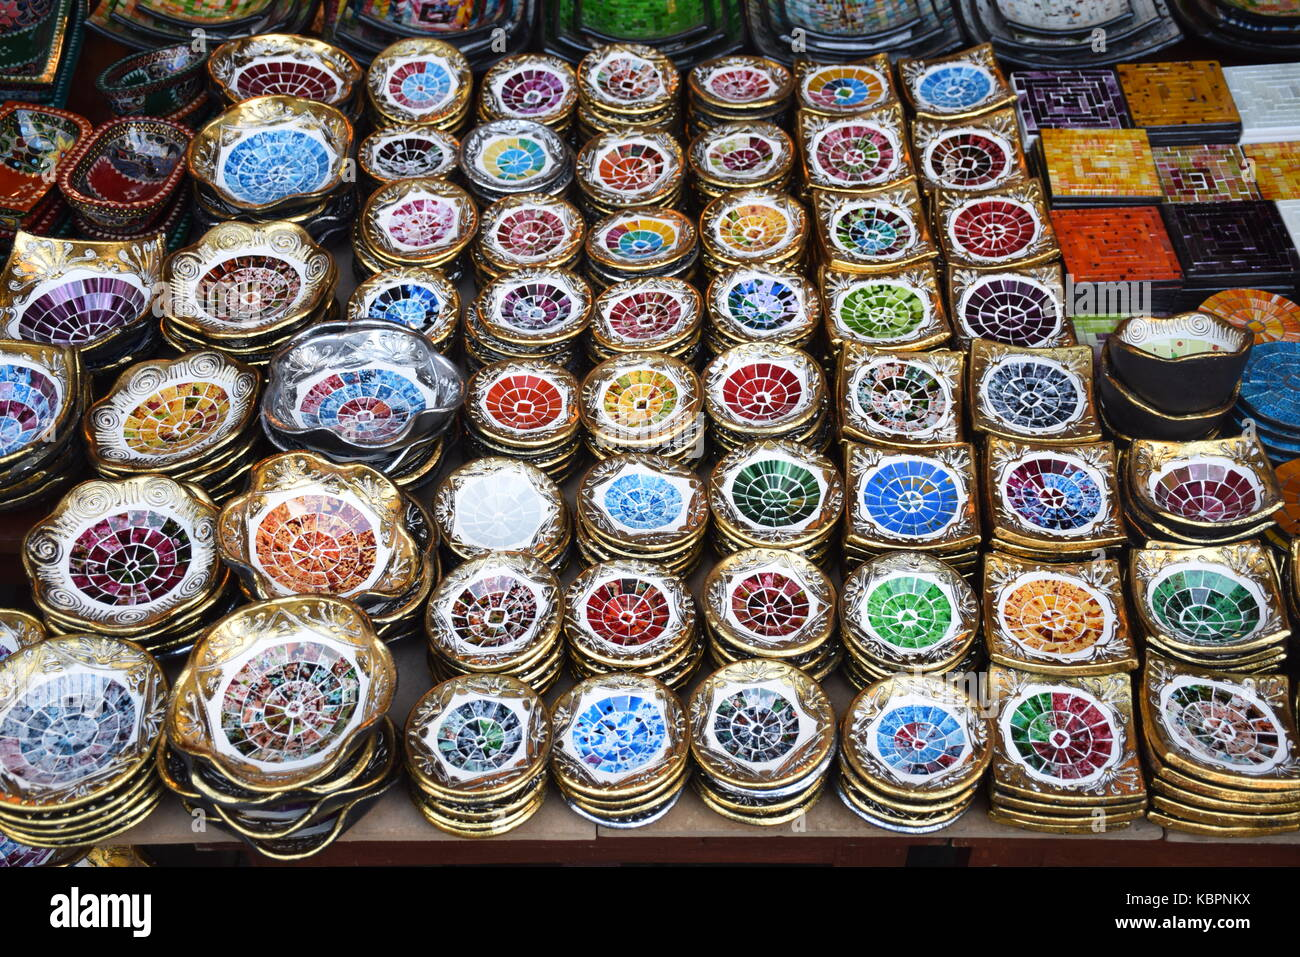 Colorful small plates sold in a shop in Ubud market in Bali, Indonesia - Stock Image